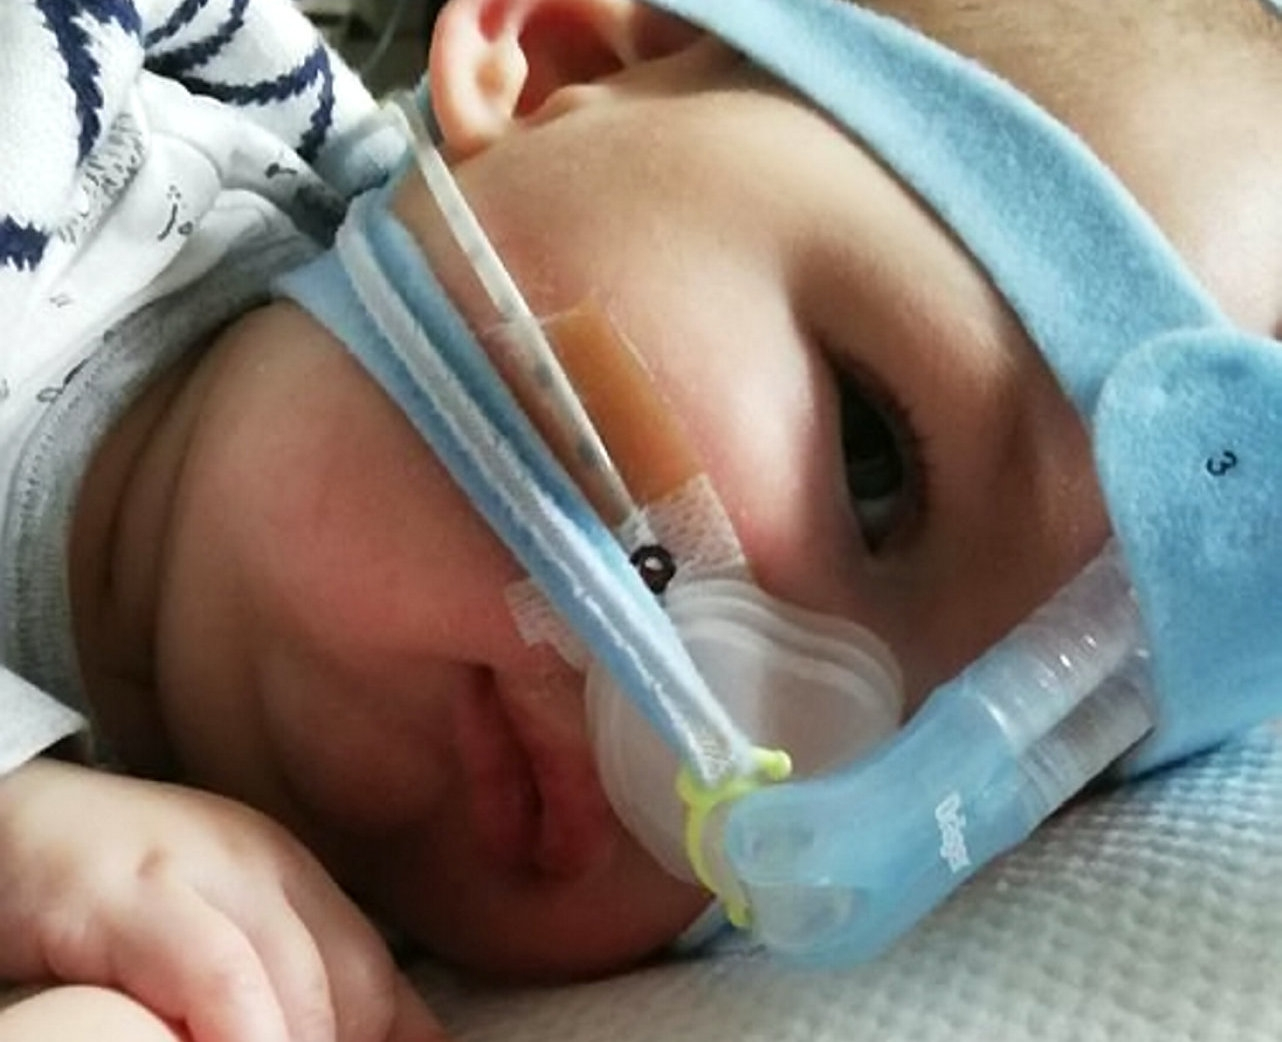 Family Of Baby Boy Given Three Months To Live Are Desperately Waiting To See If The NHS Will Pay For The Drug That Could Save His Life